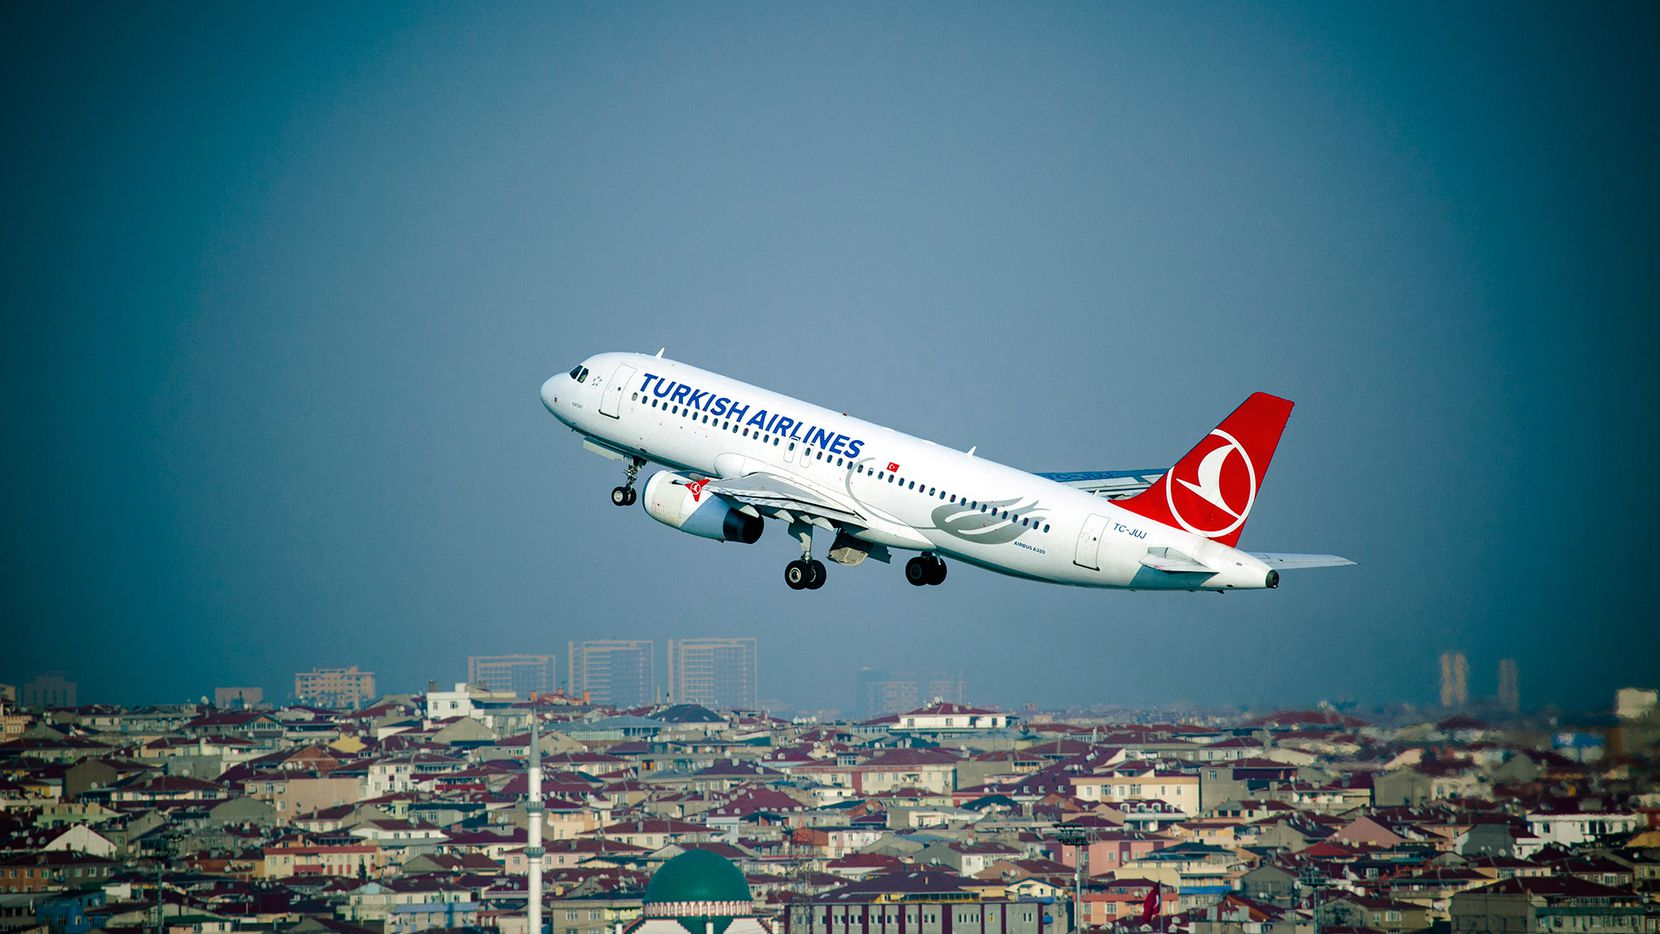 A Turkish Airlines Airbus A320 jet takes off from Istanbul Airport in Turkey. Turkey's flag carrier is set to start service to DFW International Airport in September.